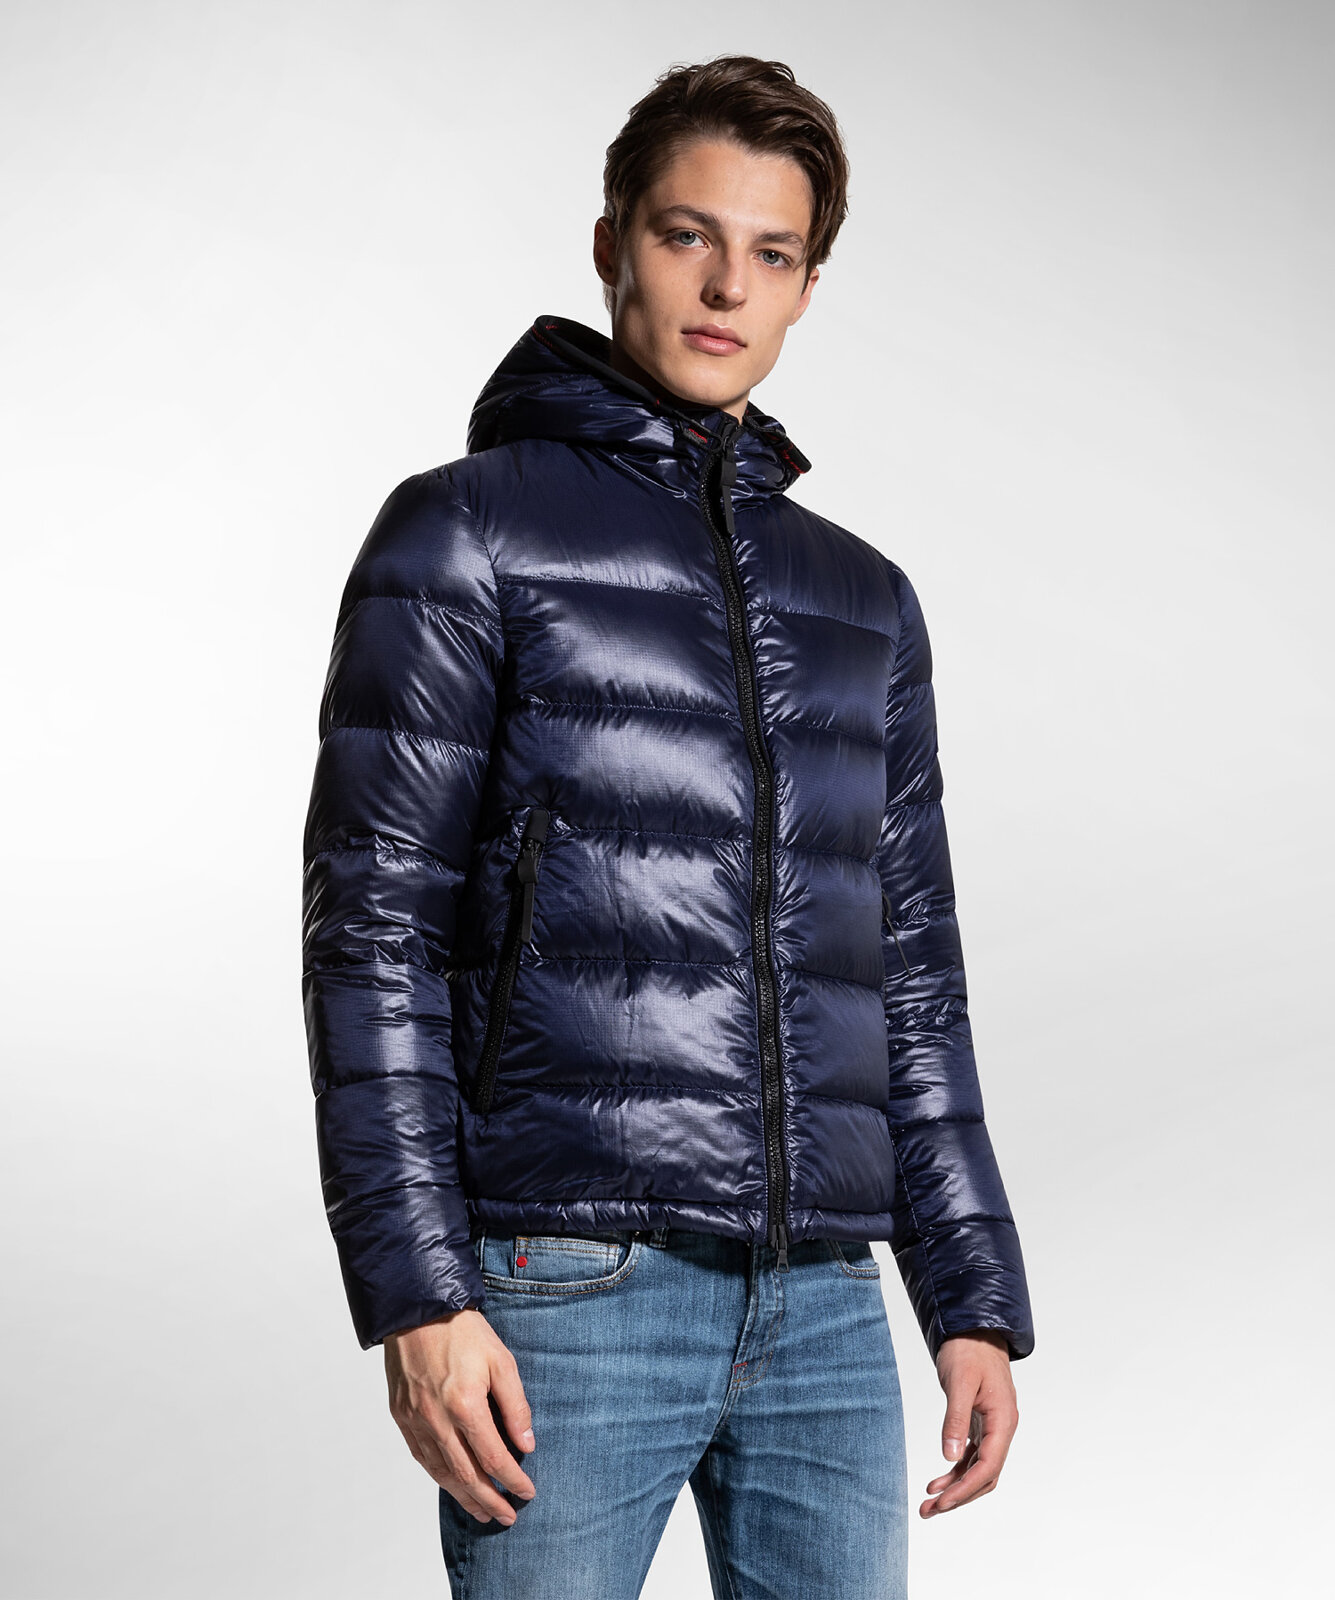 Nylon Ripstop Down Jacket - Peuterey